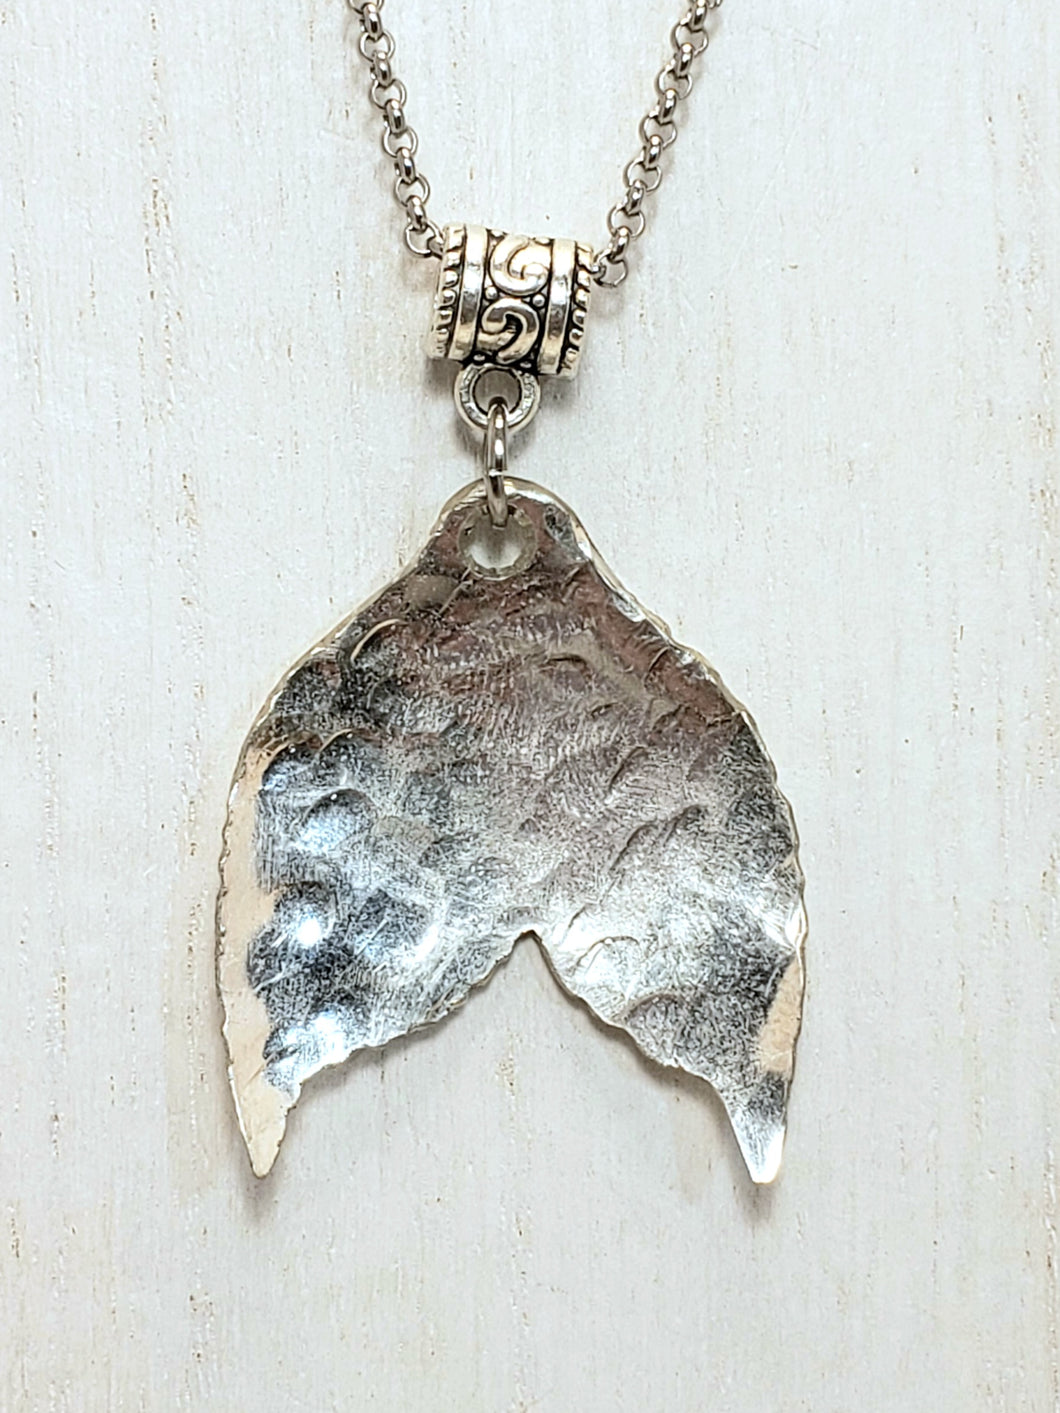 Whale Tail silverware Necklace